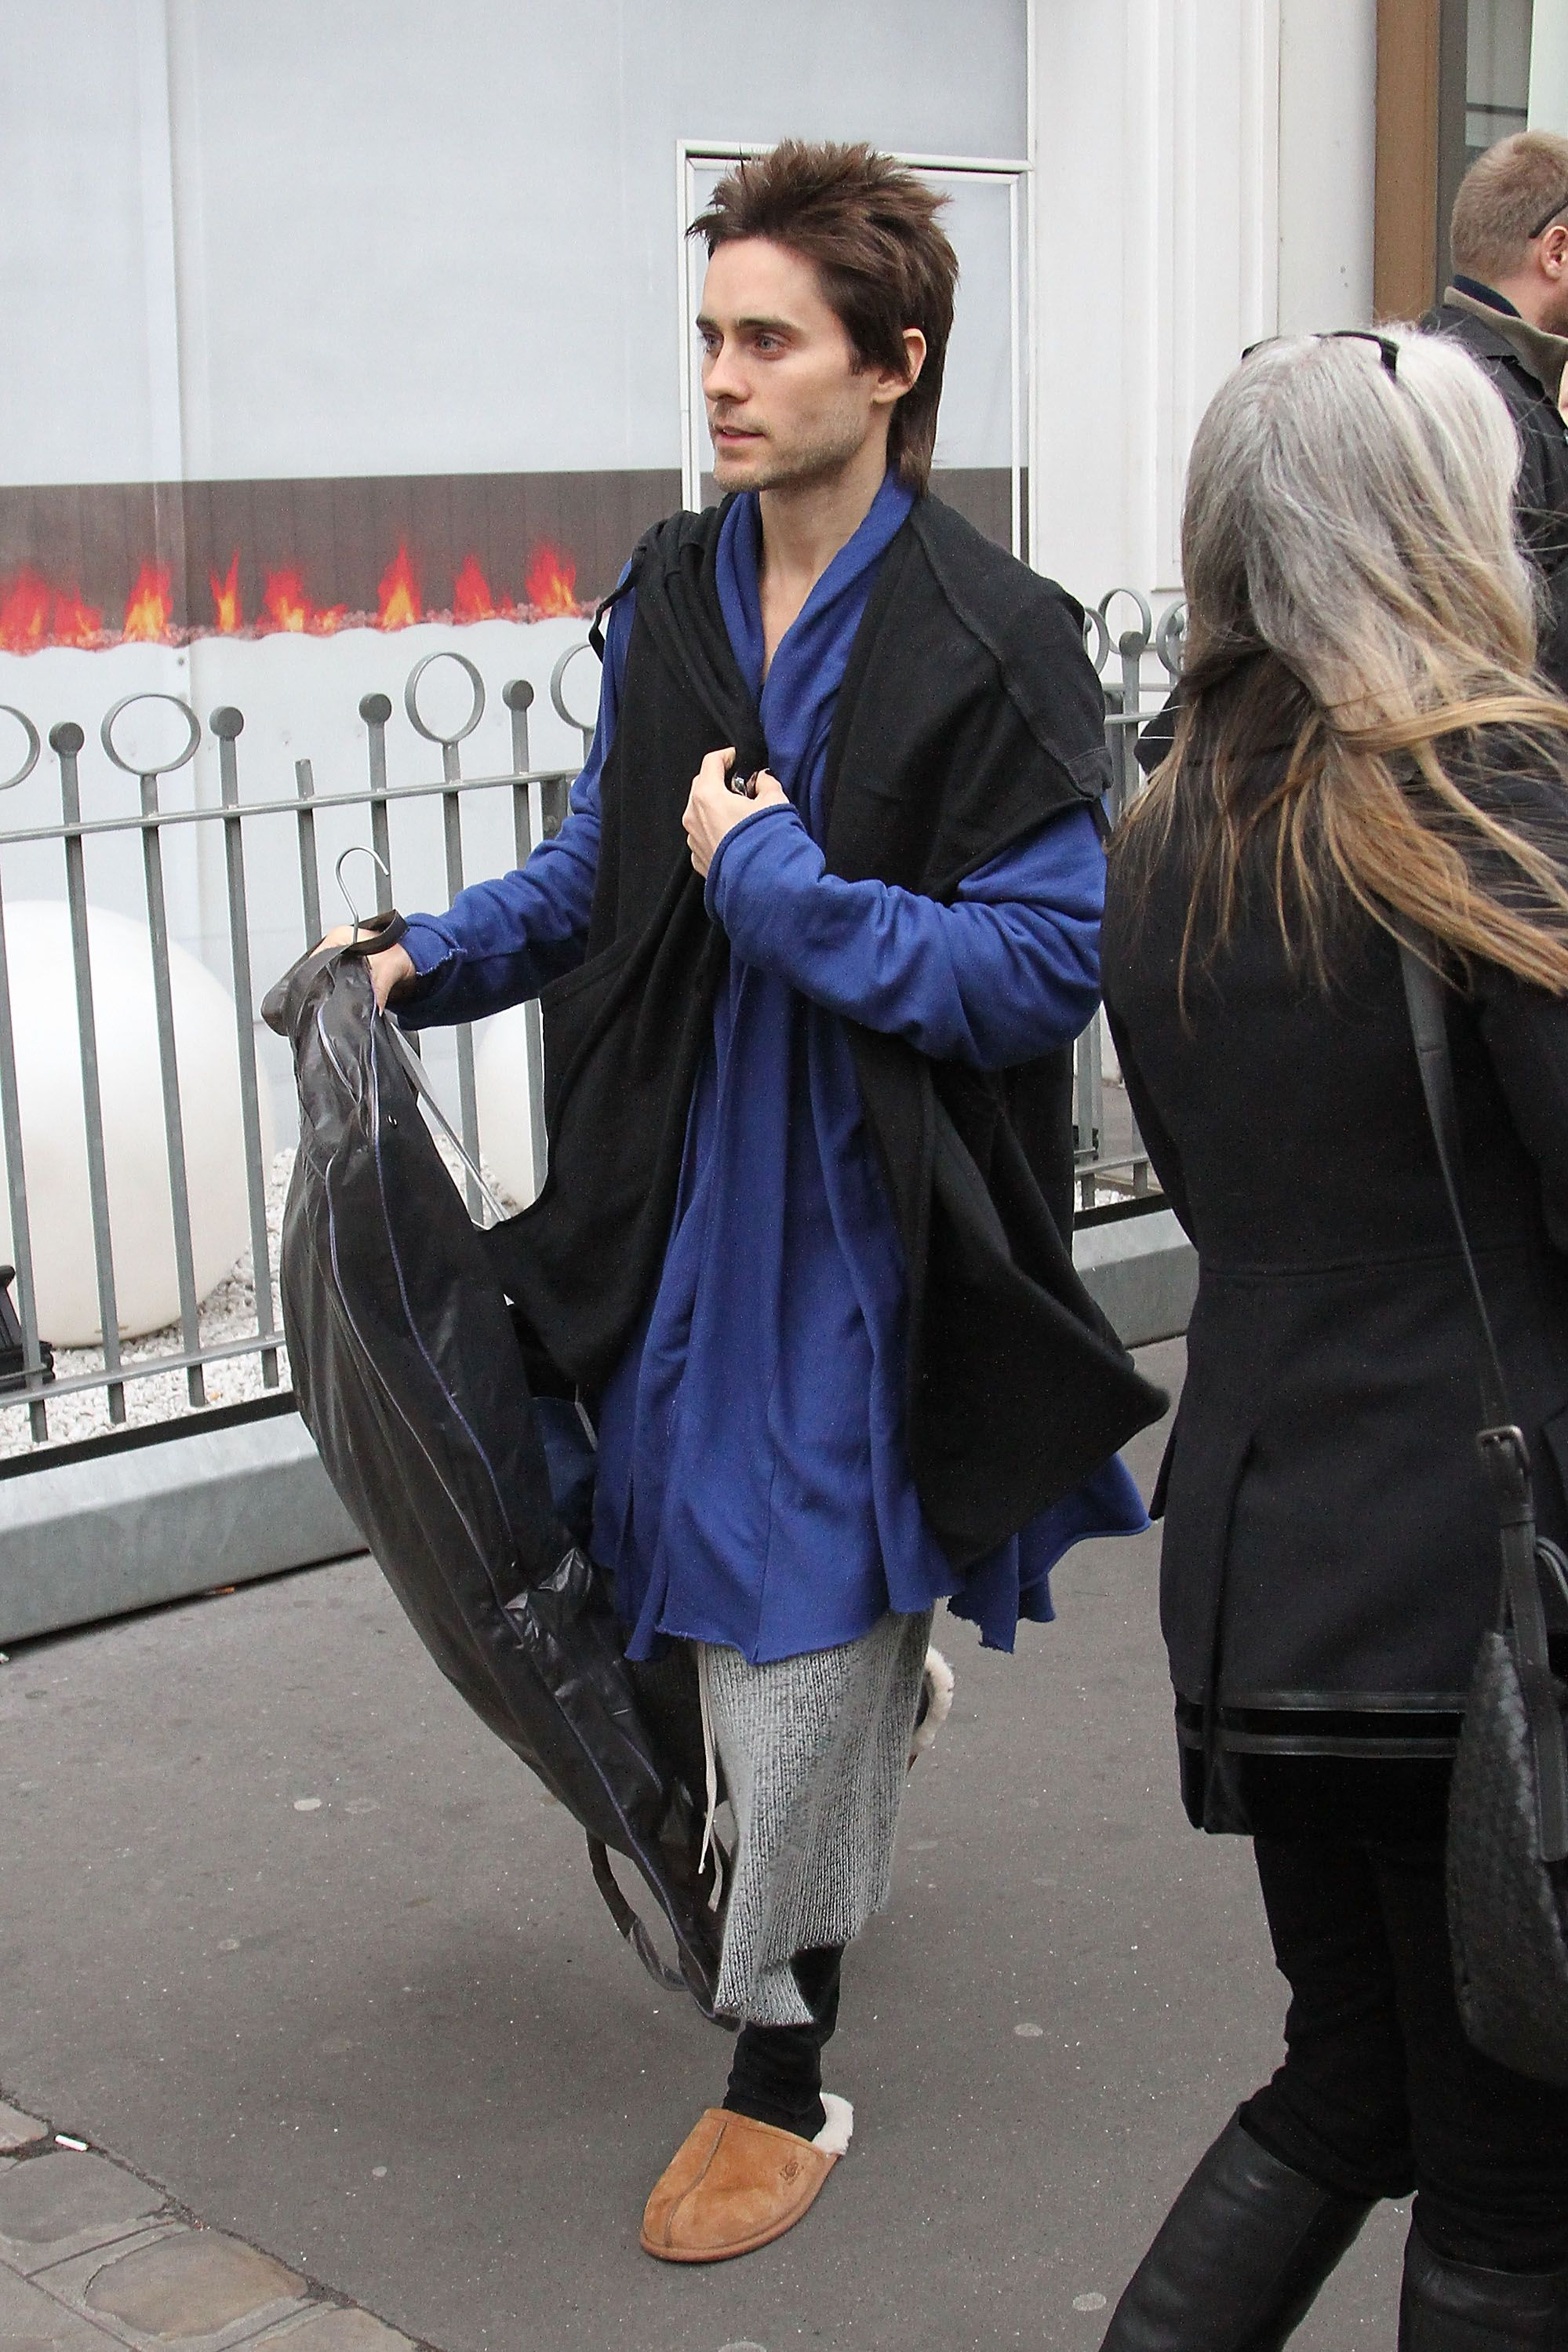 "Jared Leto Google ""Jared Leto house slippers"" and you'll find that the actor wears slippers in public quite often. His count might even rival that of Bieber's."